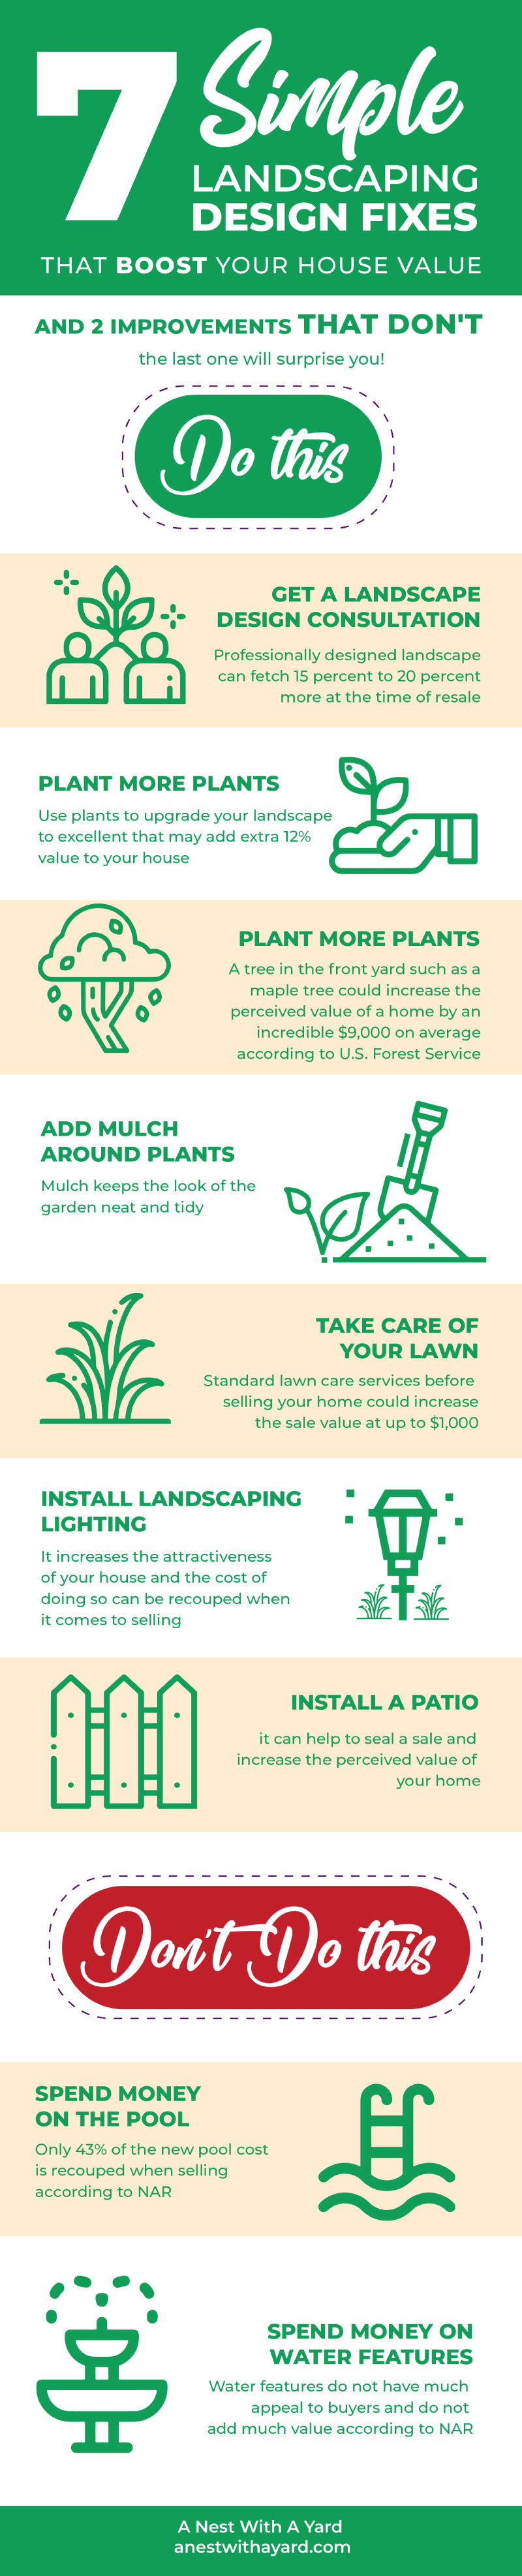 7 simple landscaping design values that boost your house value - and 2 fixes that don't #backyardLandscaping #backyardLandscapingIdeas #landscaping #cheapLandscapingIdeas #landscape #curbAppealProjects #curbAppeal